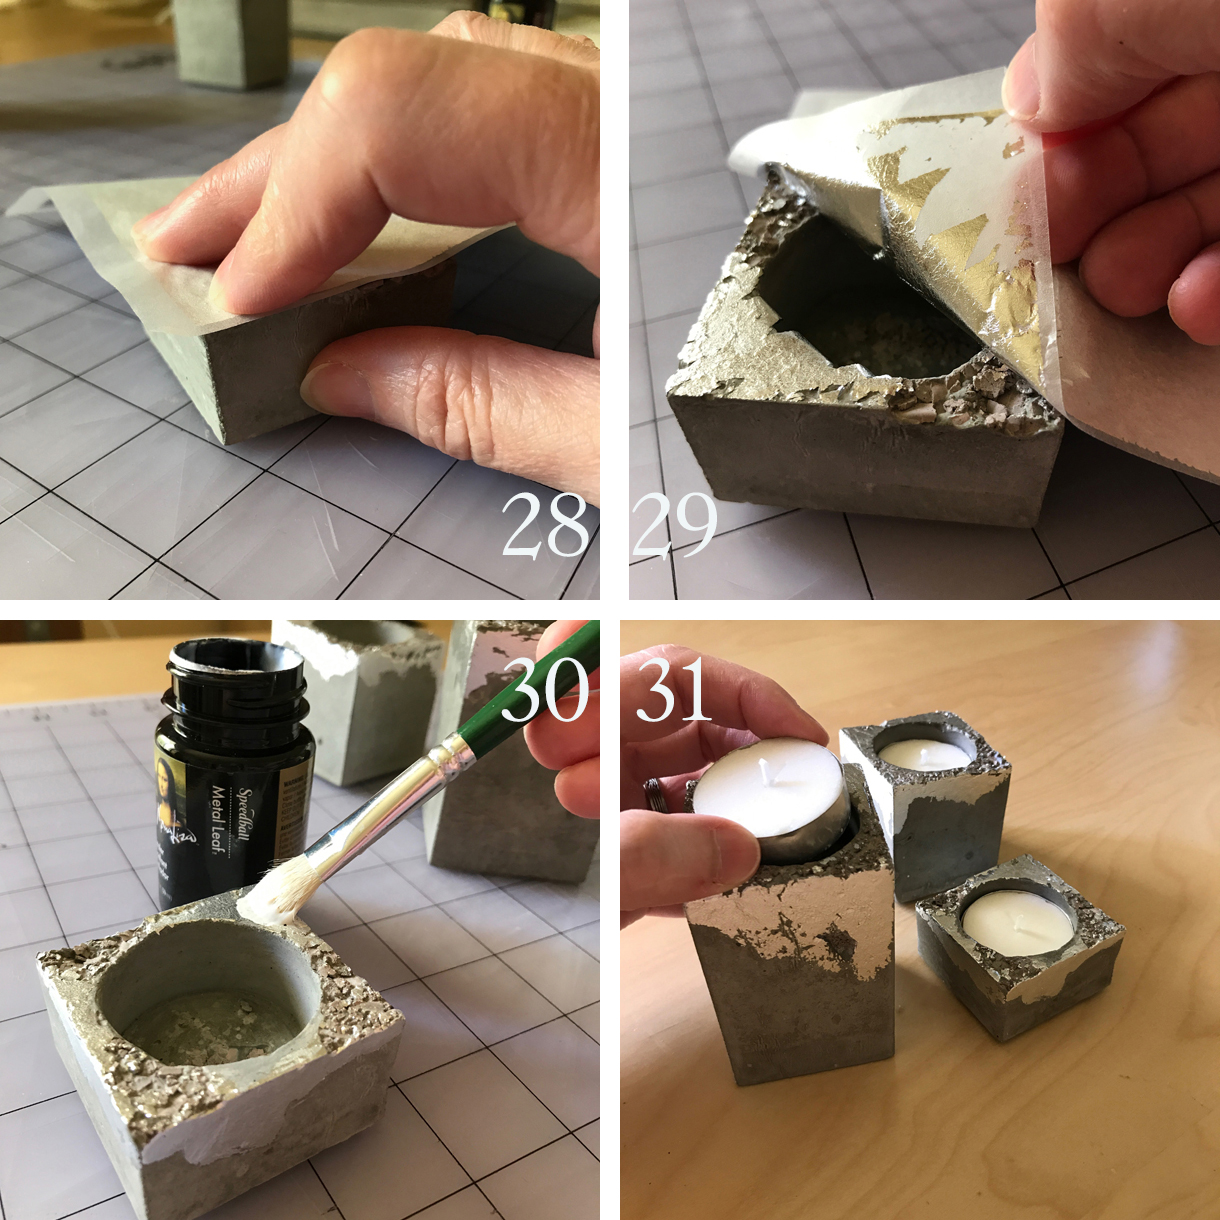 28. Press the leaf side of the sheet over an area that has adhesive. Burnish well with your fingers.  29. Gently peel back the sheet and the leaf will be left behind on the cement. Repeat this over the same area if not enough adhered and also repeat it over the rest of the piece(s) until you are happy with the amount of leafing. Loose bits can be brushed away with your fingers or a dry soft brush.  30. Apply a coat of sealer over the entire piece(s). This will ensure your metallic leaf will not tarnish or rub off. It will also seal the cement so it won't stain as easily.  31. Drop in your tea lights and you're ready for a special meditation! (Or a romantic dinner. Or both!)